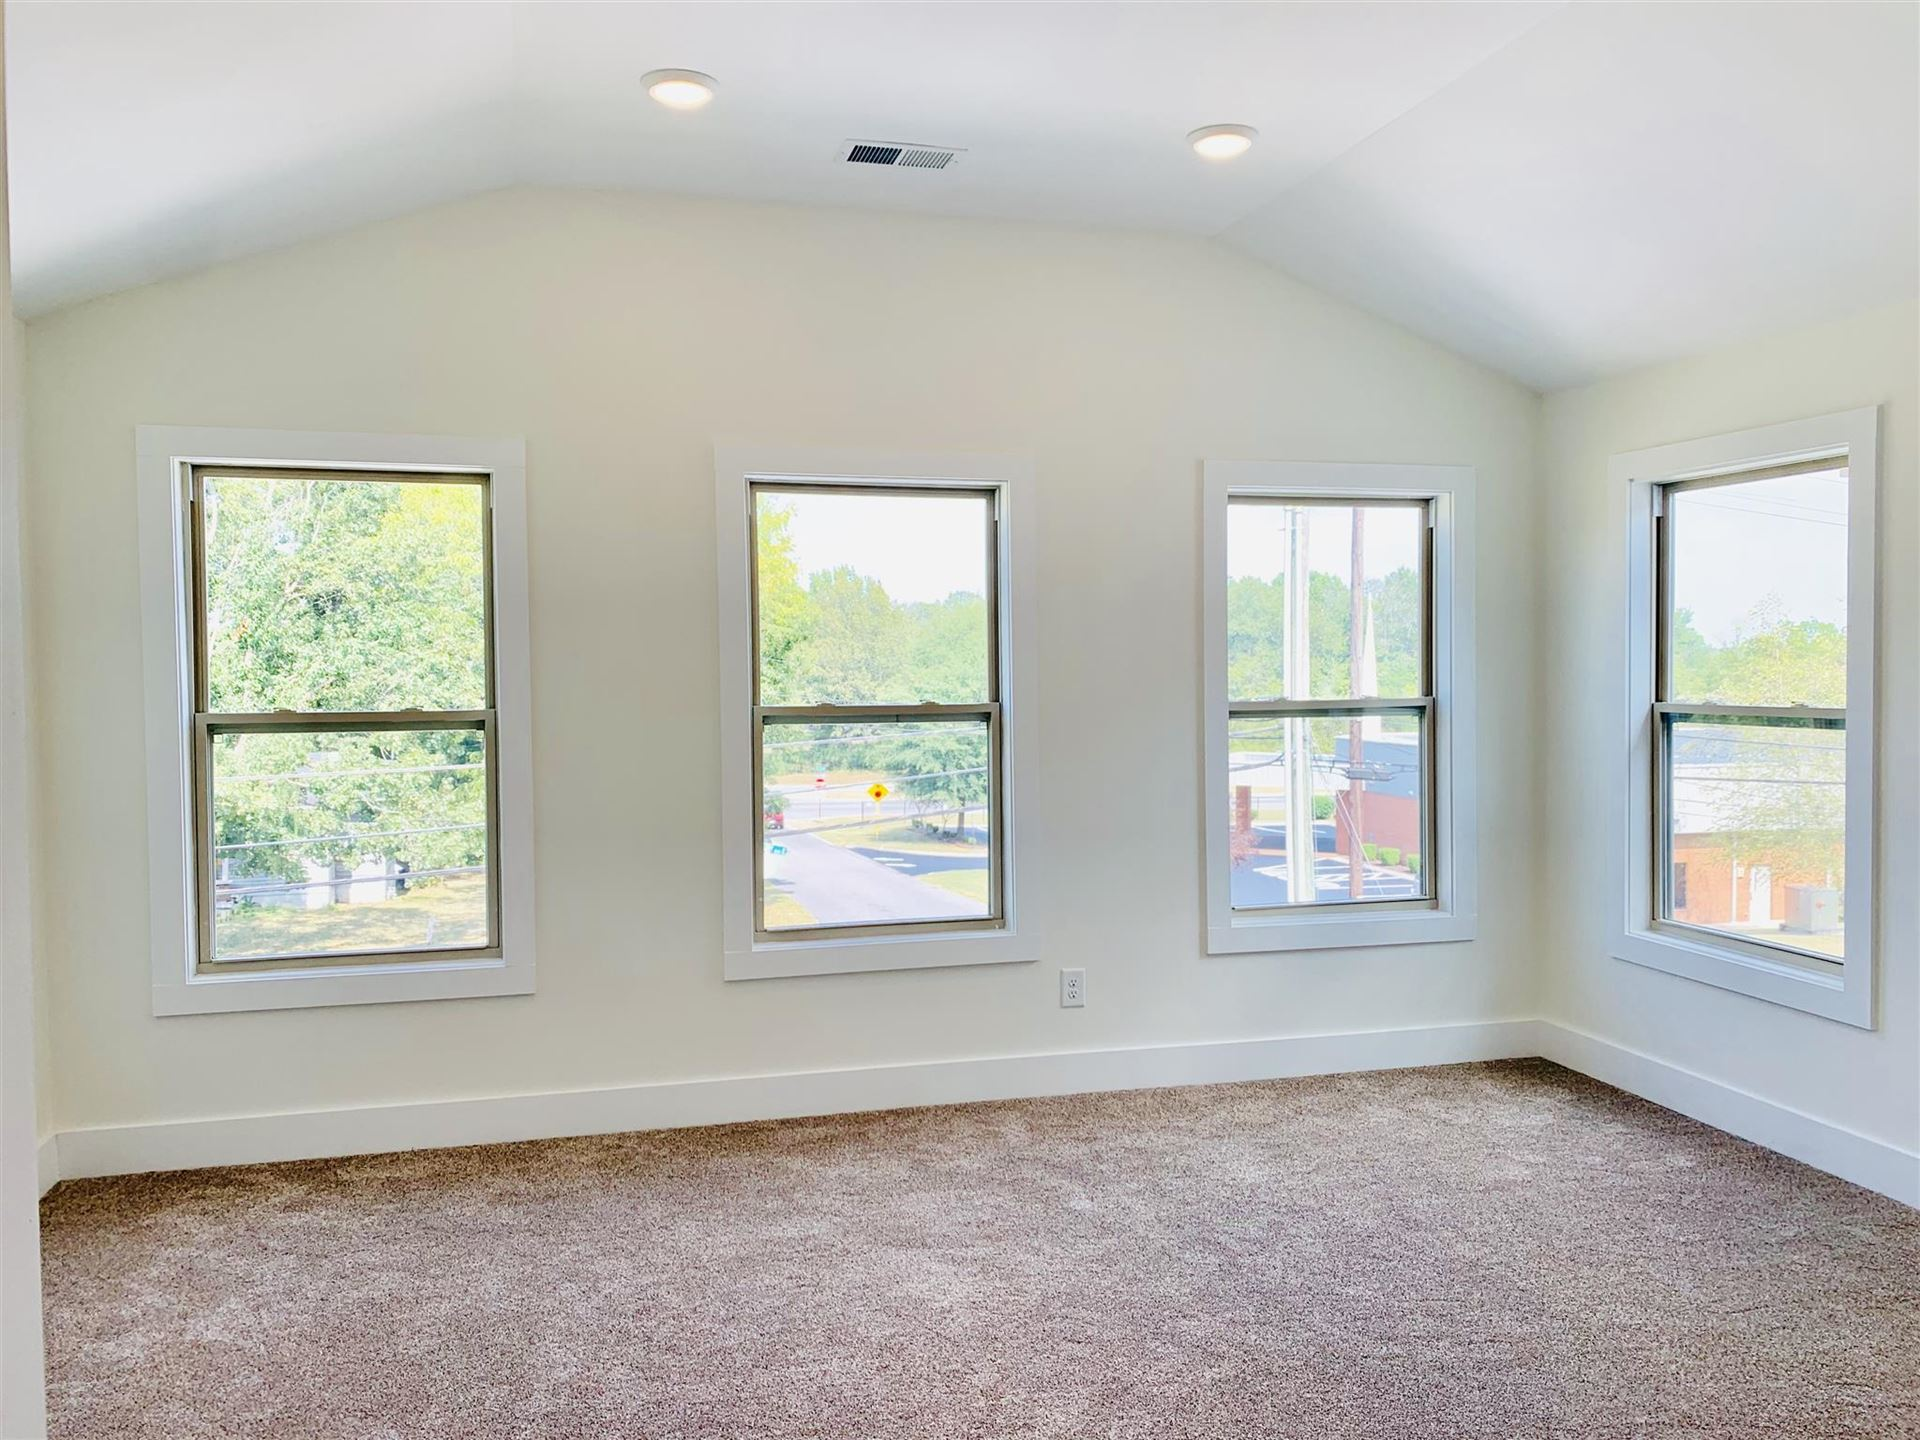 Property Image Of 1004A E Old Hickory Blvd #A In Madison, Tn